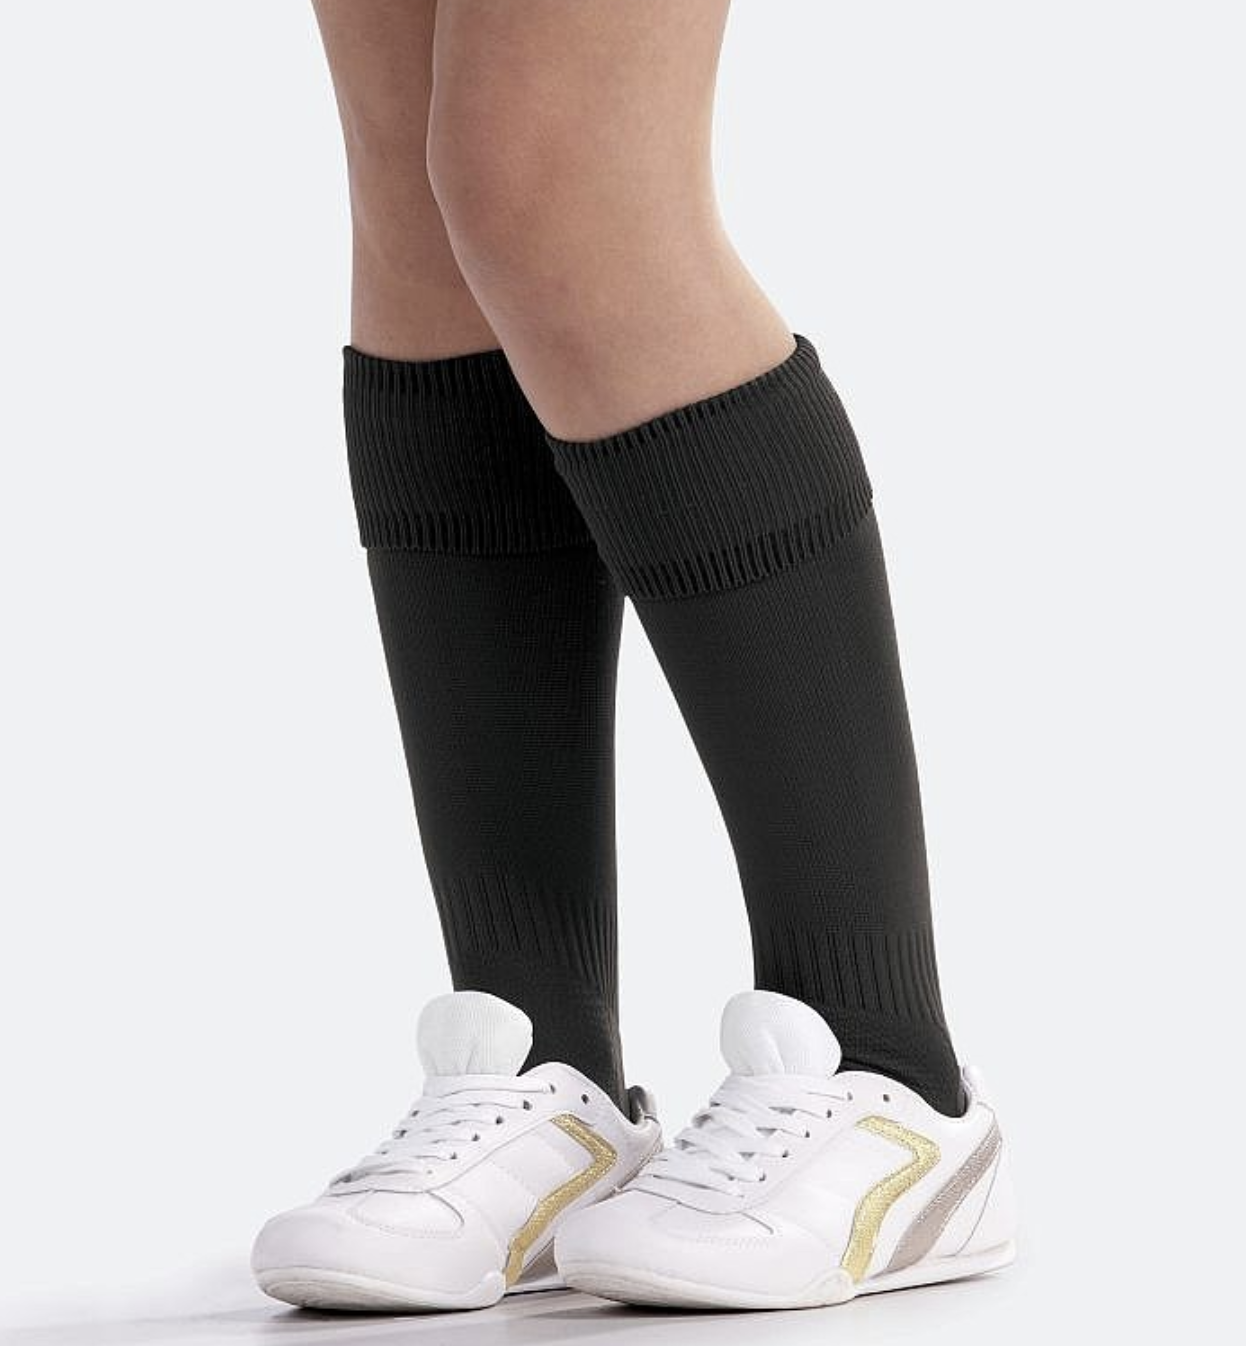 Plain Black Sports Socks